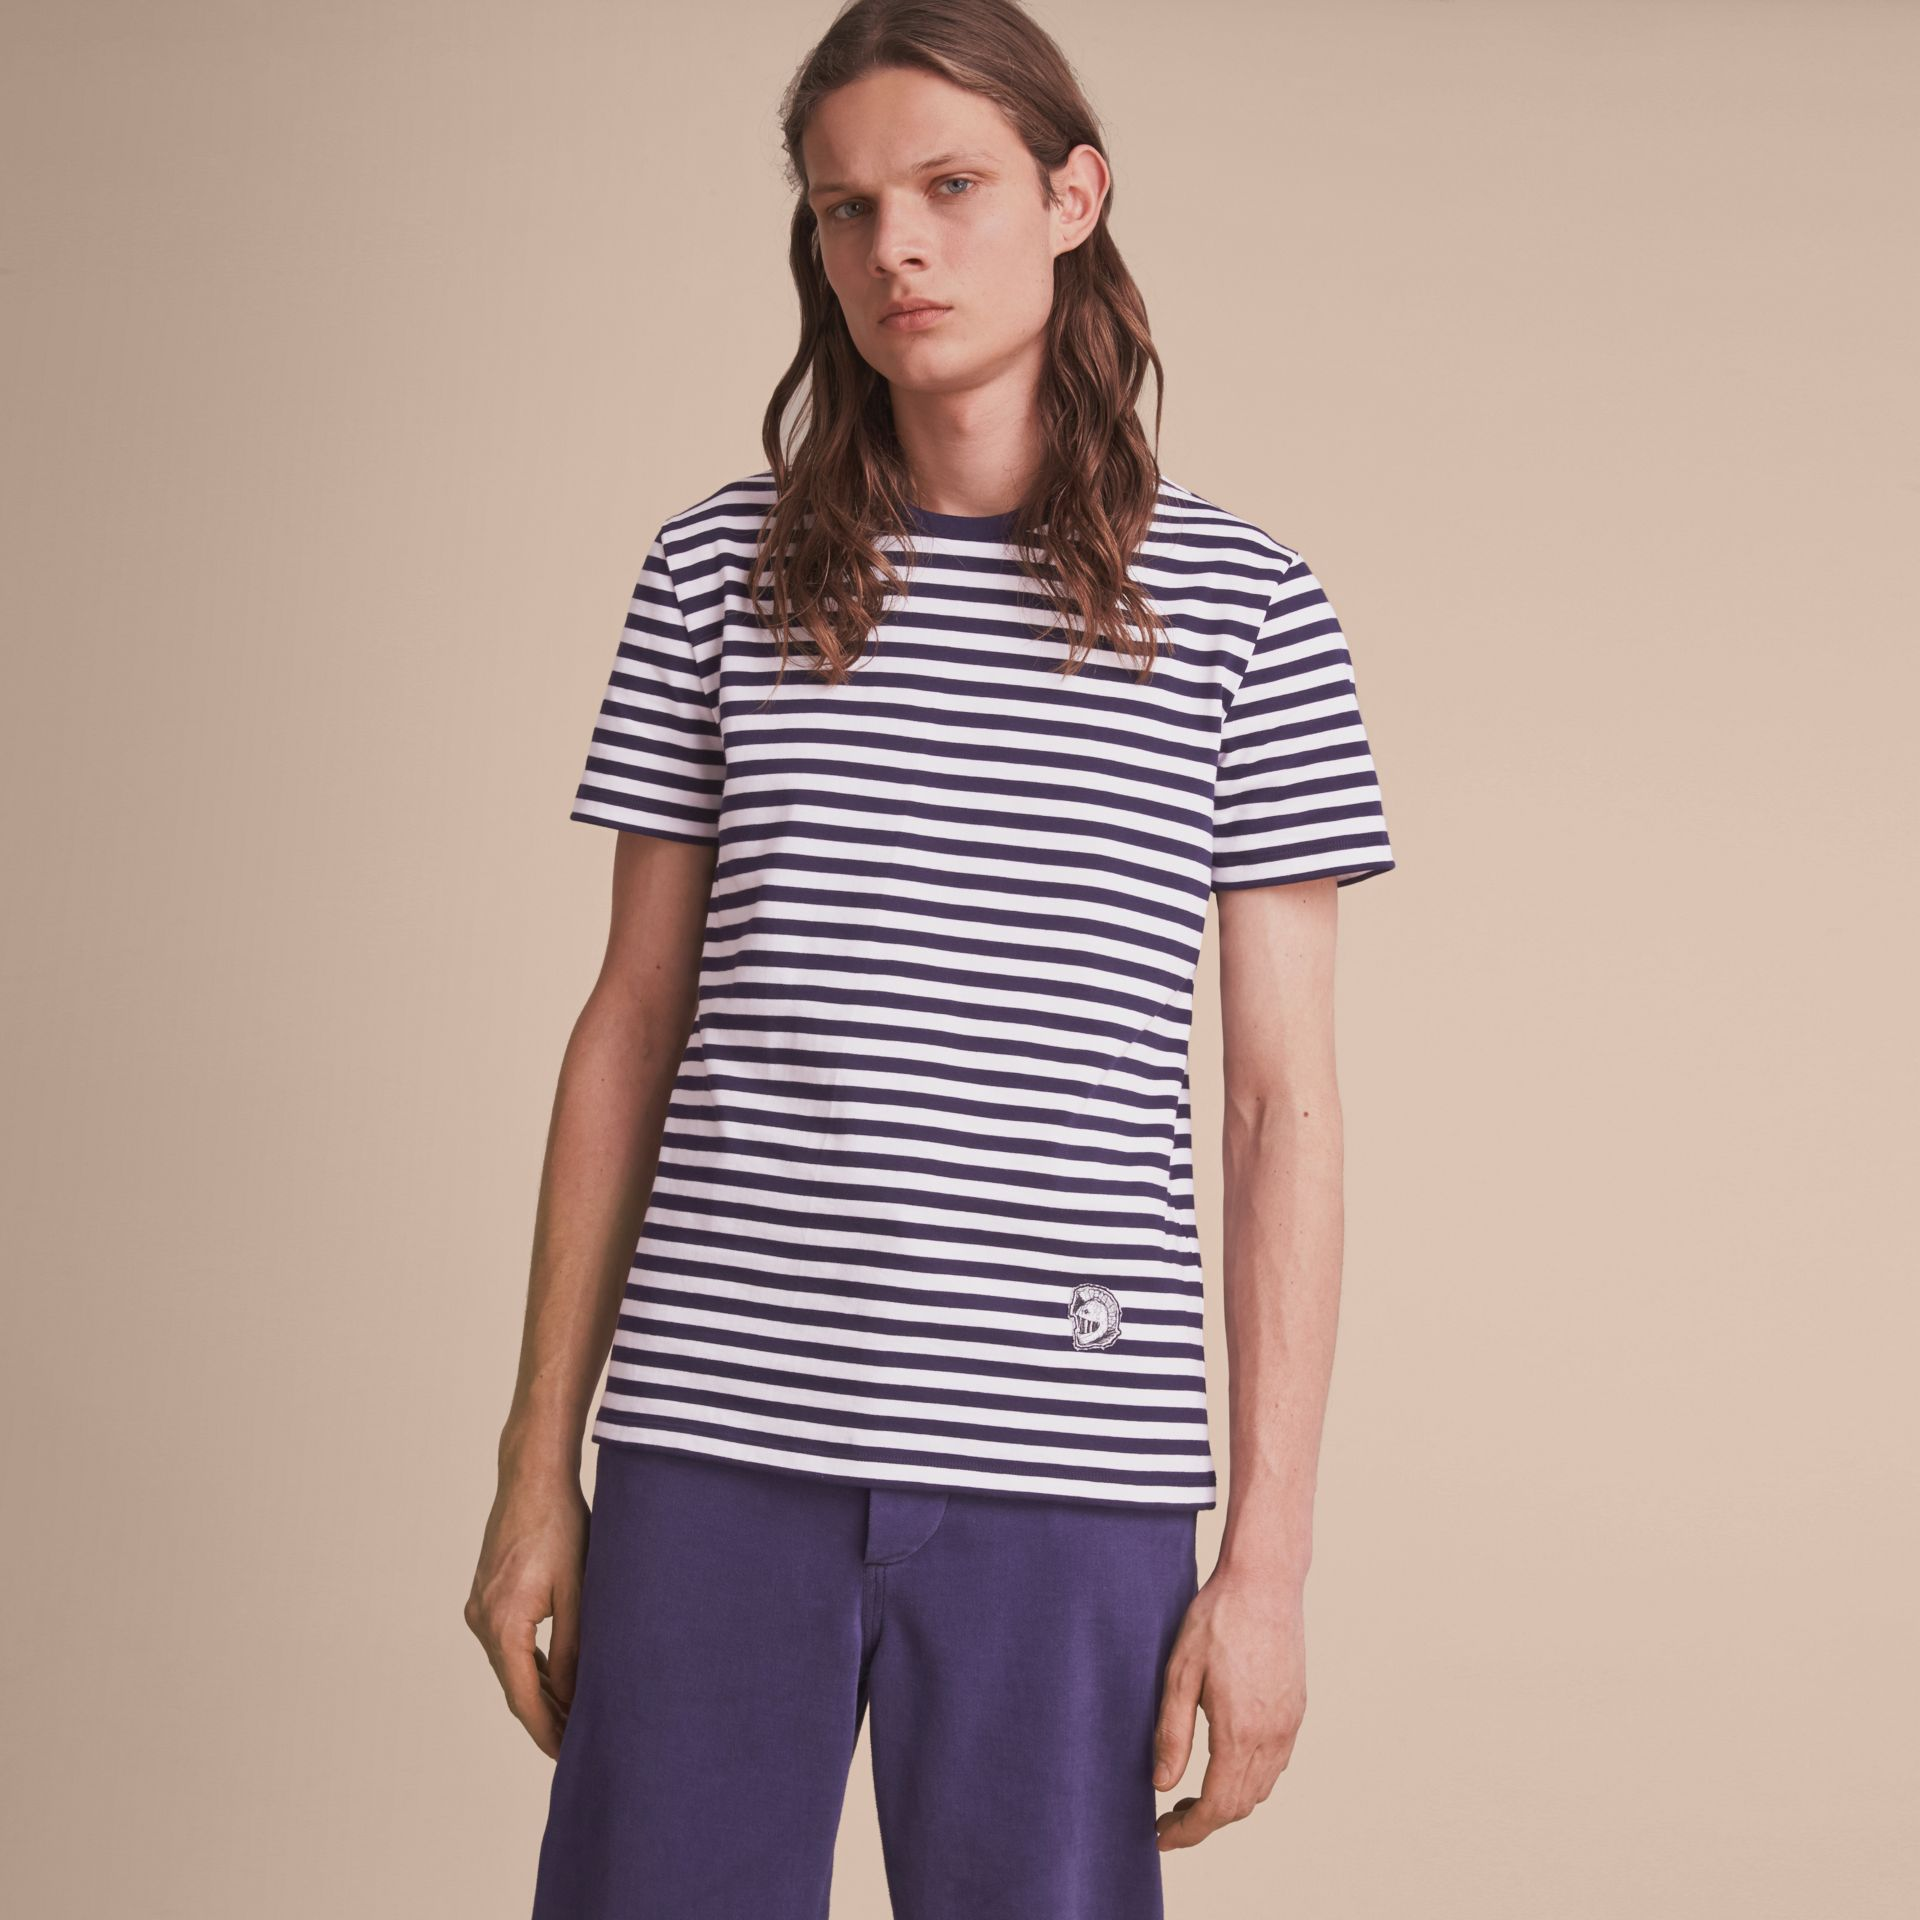 Breton Stripe Cotton T-shirt with Pallas Helmet Motif - Men | Burberry - gallery image 6